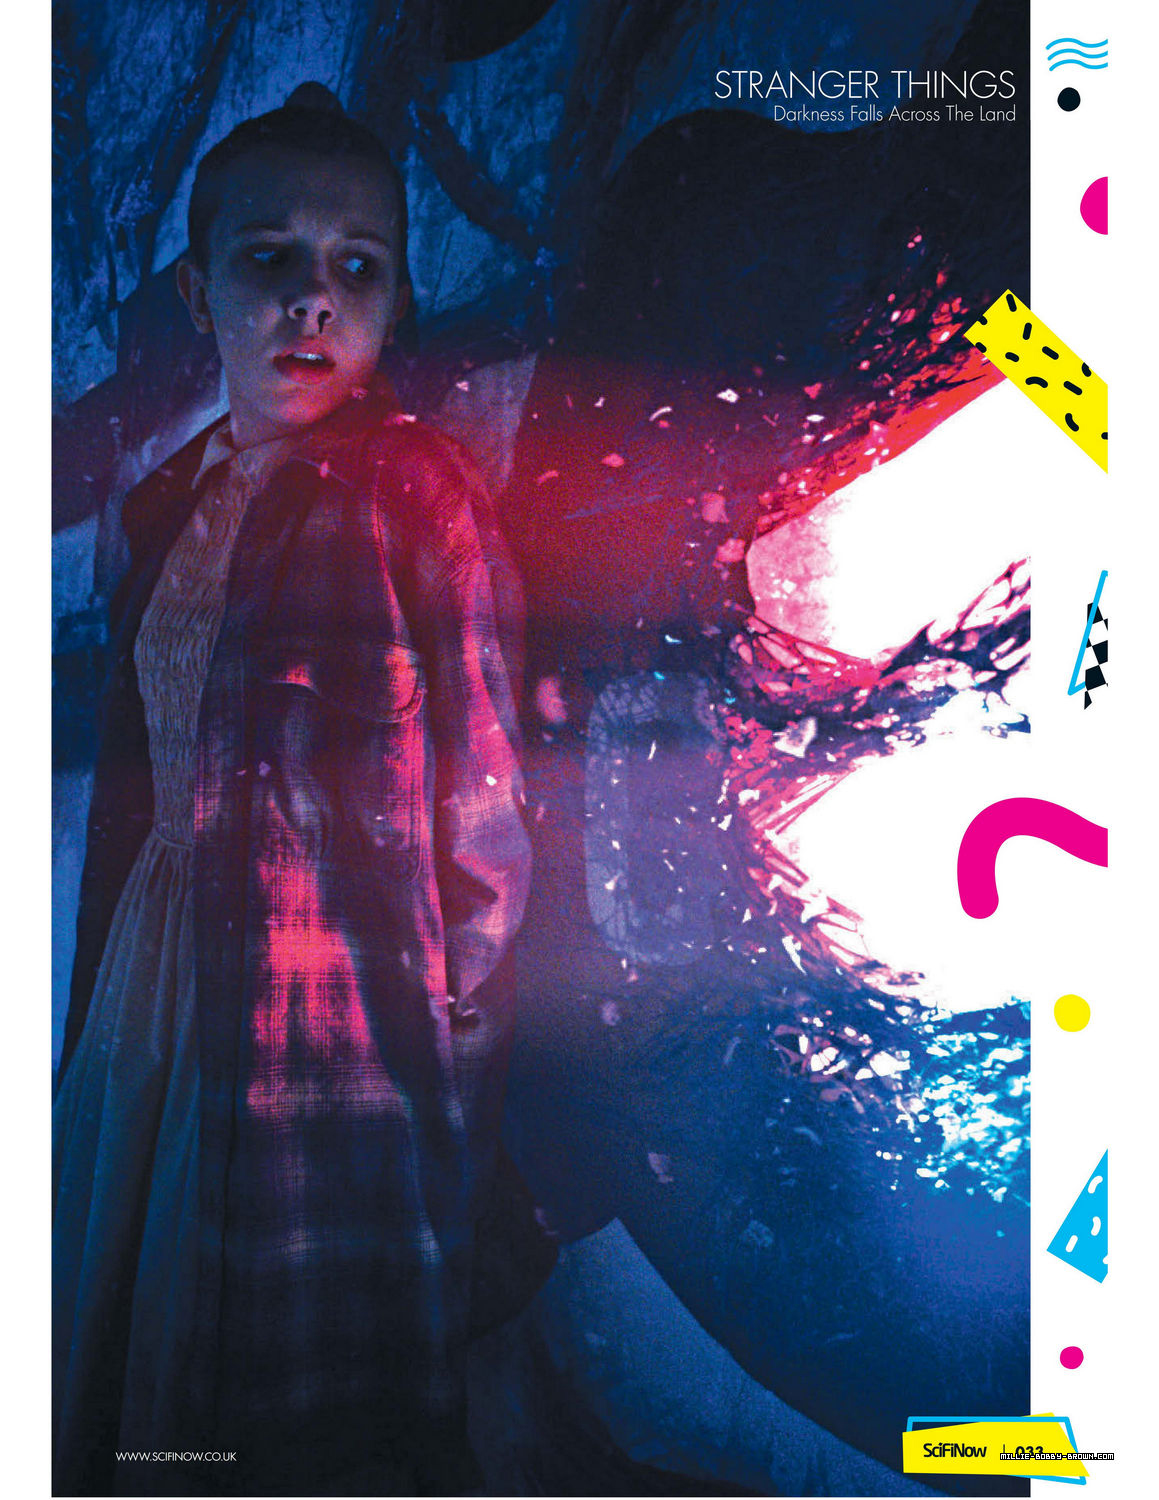 Stranger Things in SciFiNow Magazine - 2017 [4]